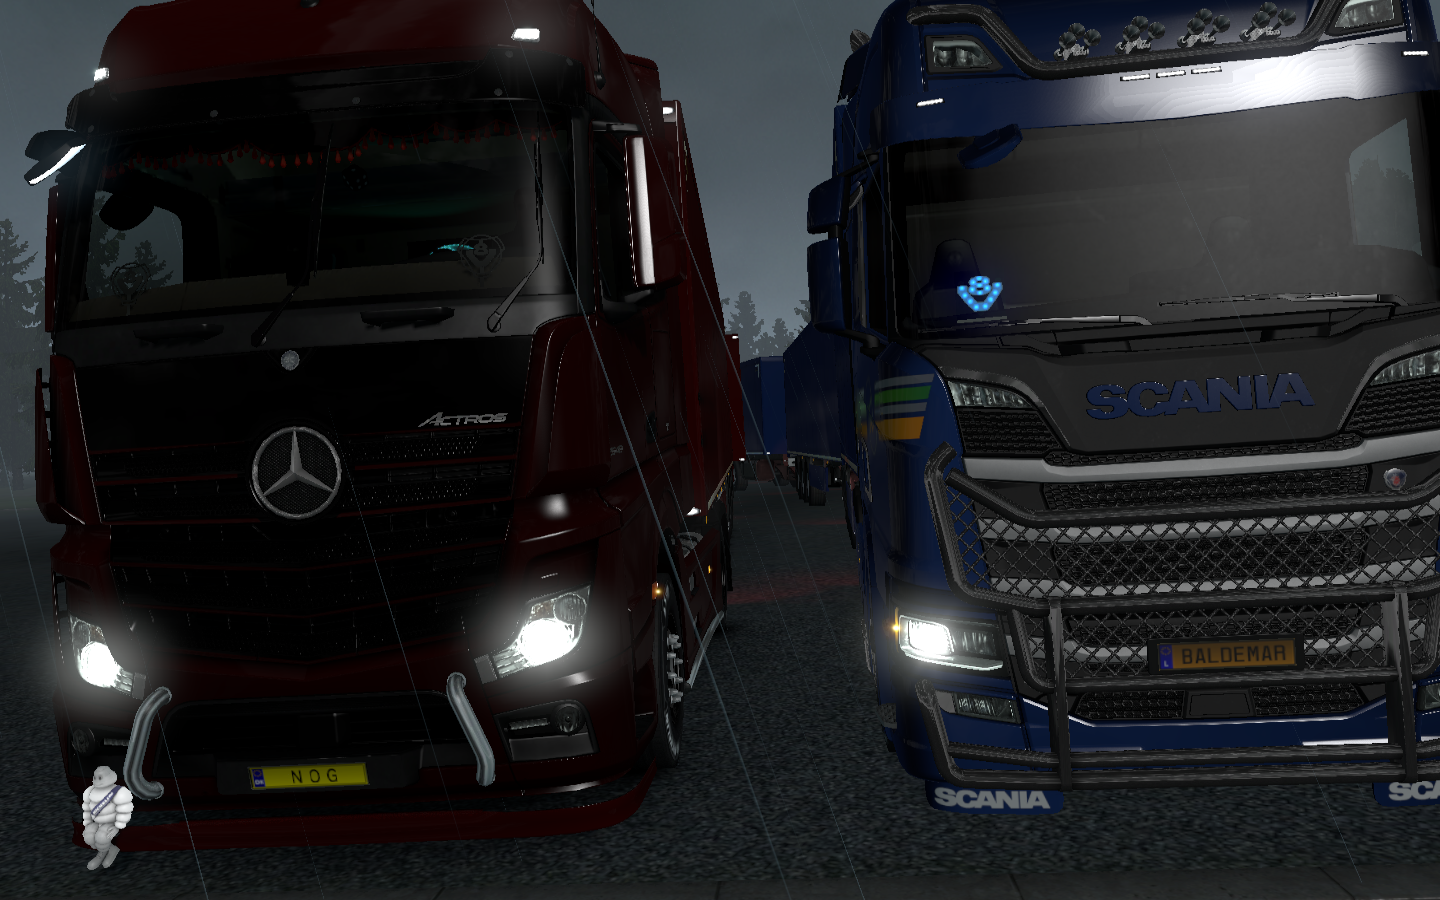 ets2_20190411_224738_00.png